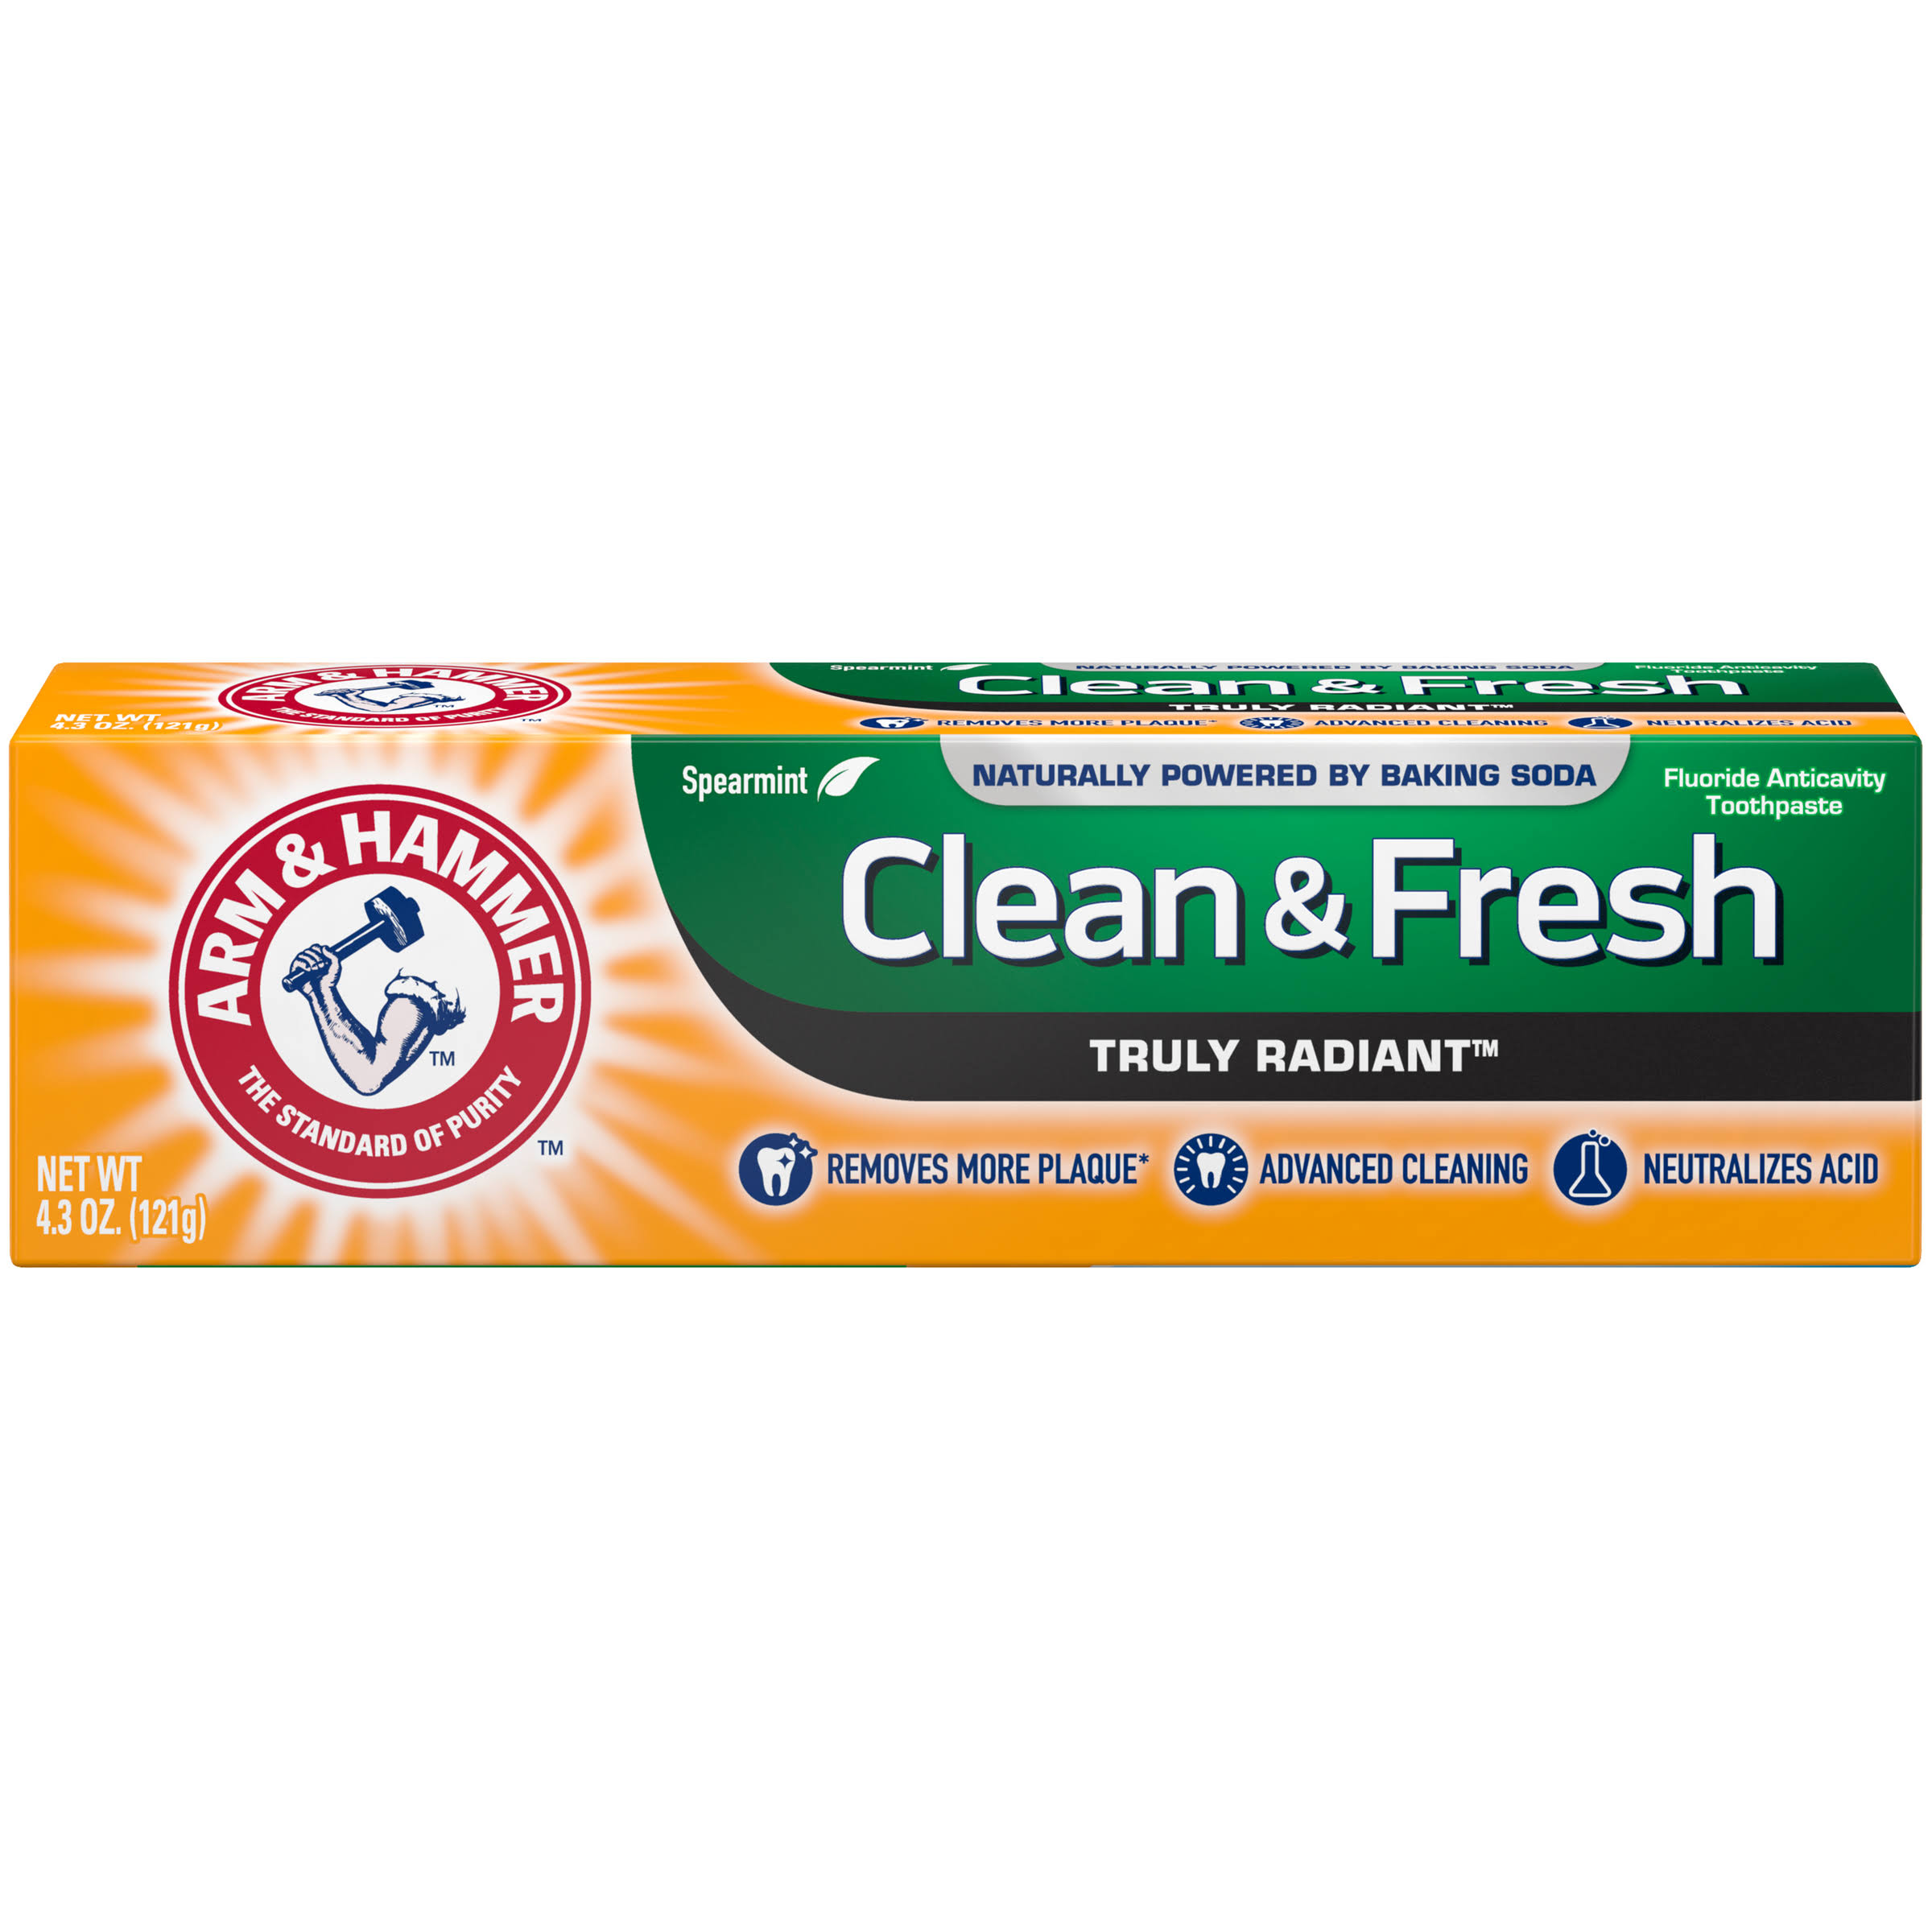 Arm & Hammer Truly Radiant Toothpaste, Clean & Fresh - 4.3 oz tube